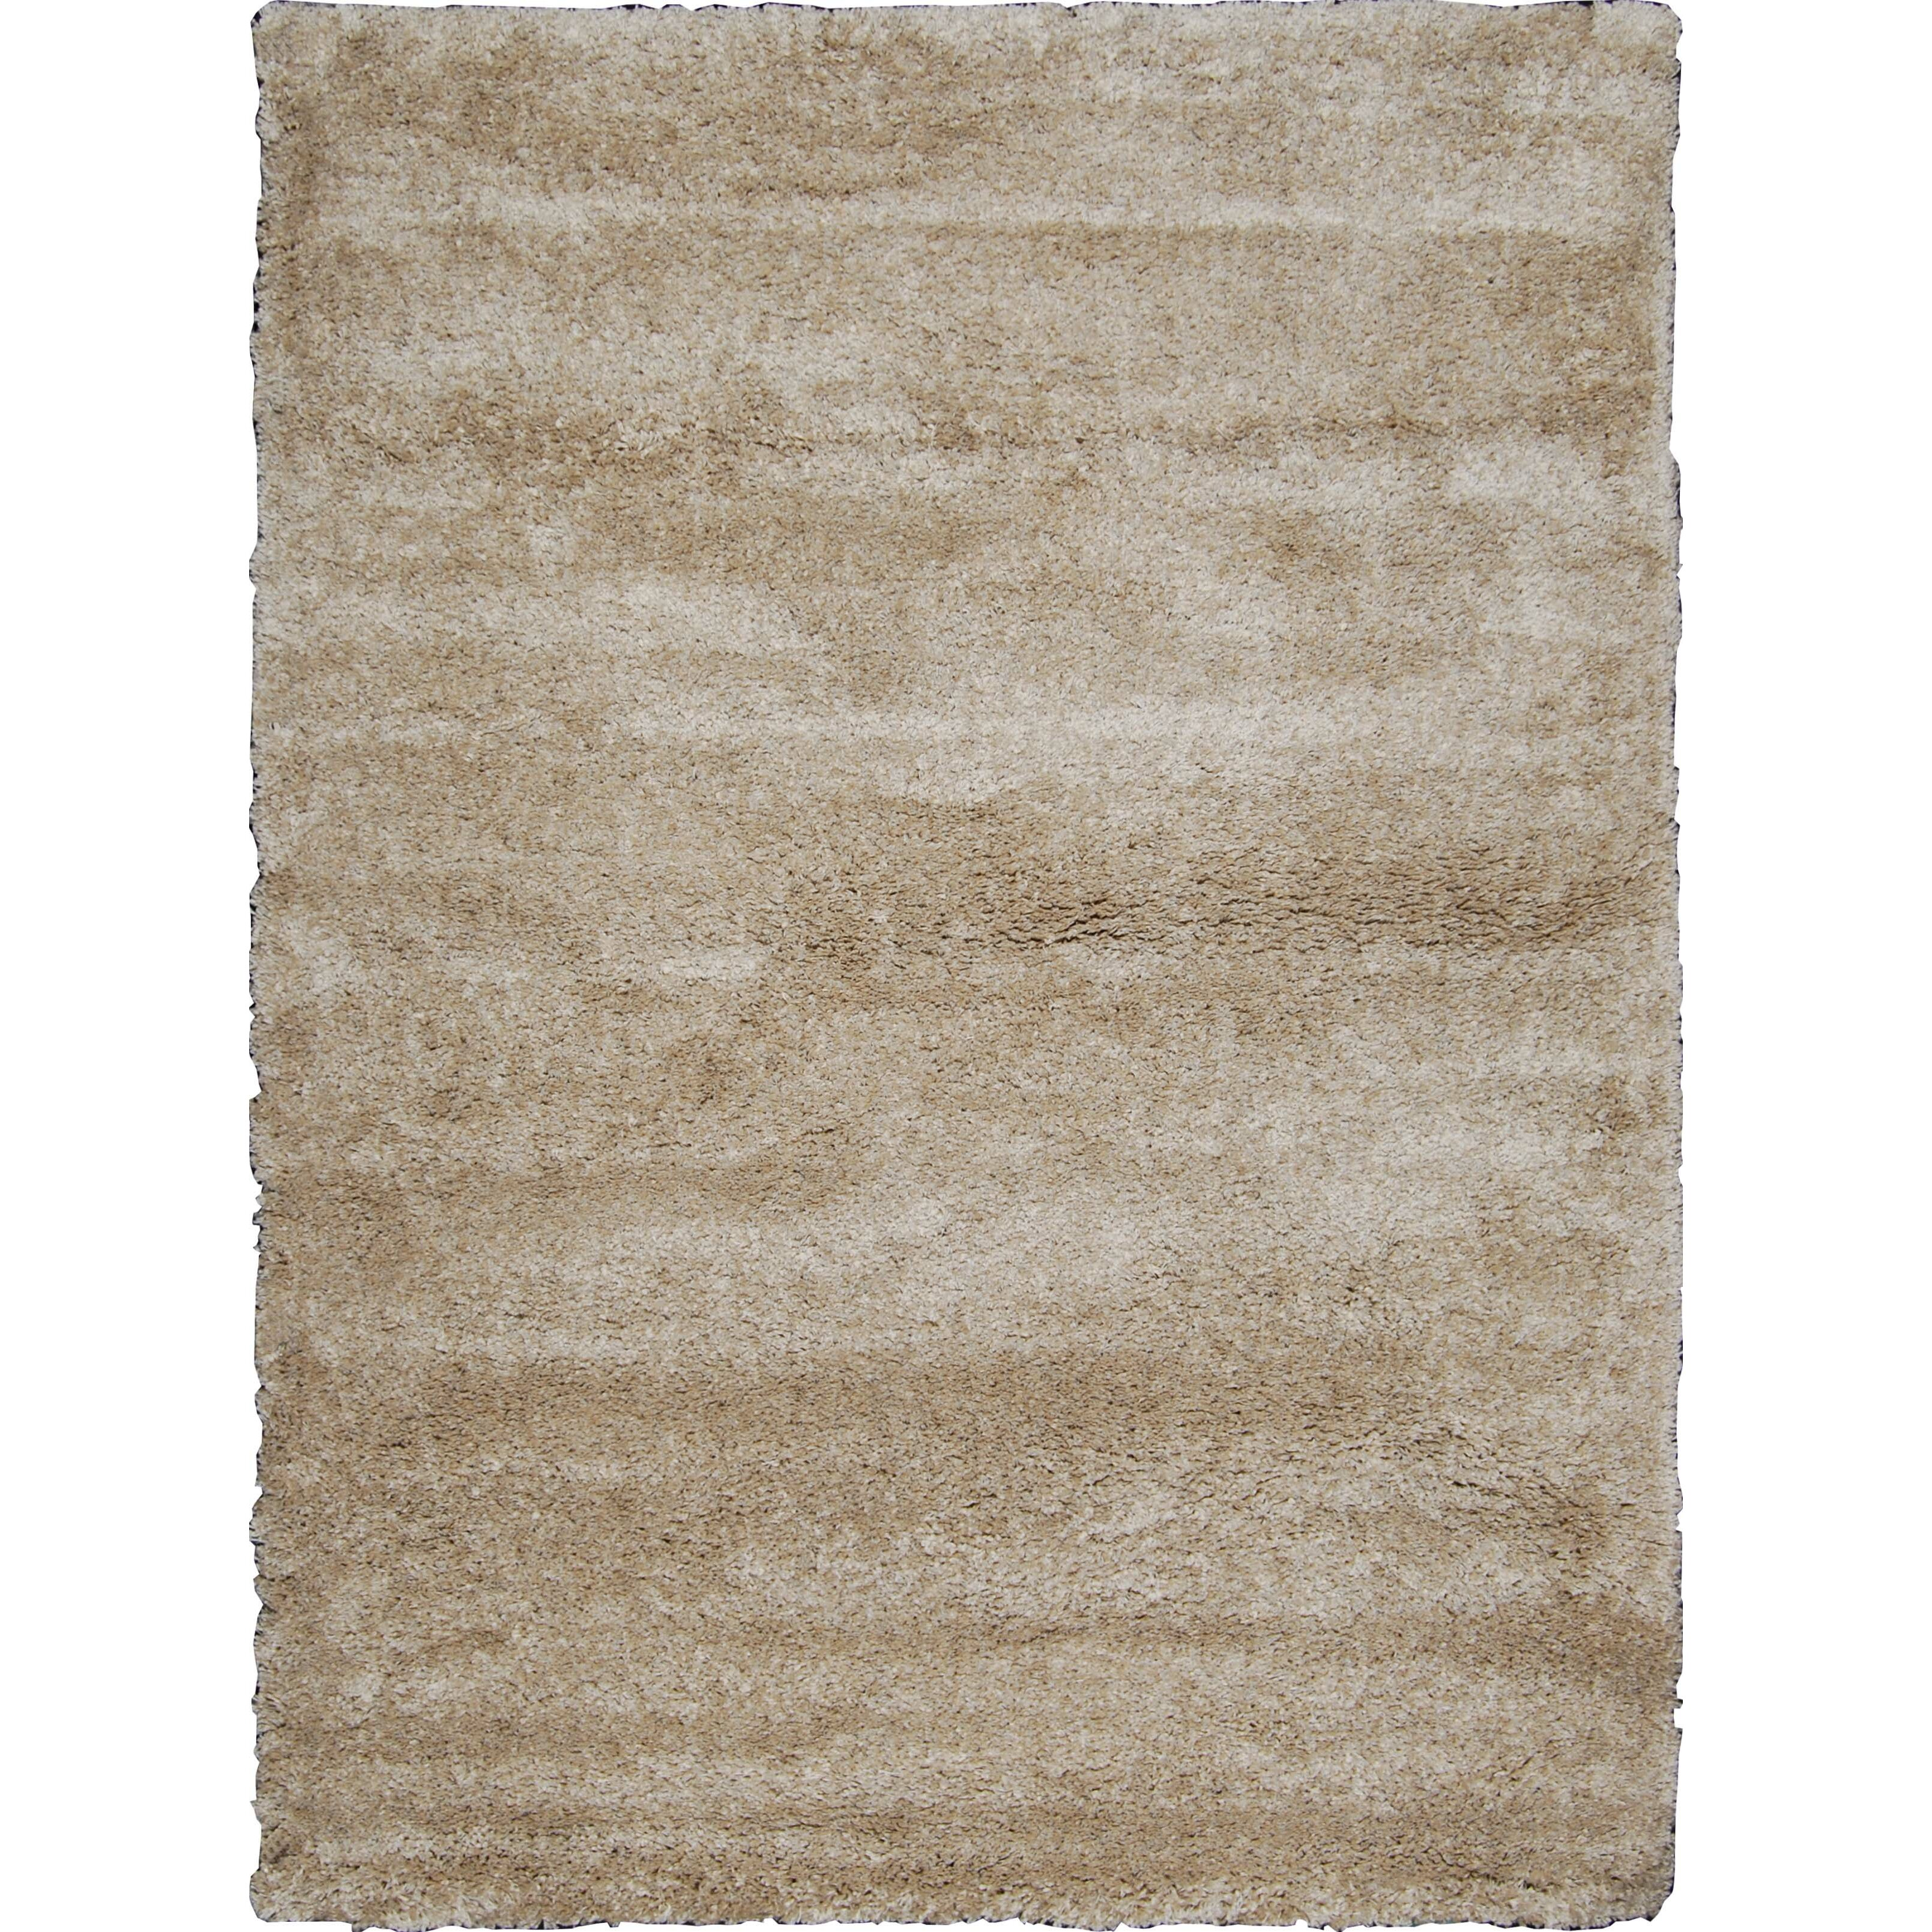 Home dynamix himalaya beige grey area rug reviews wayfair for Grey and tan rug